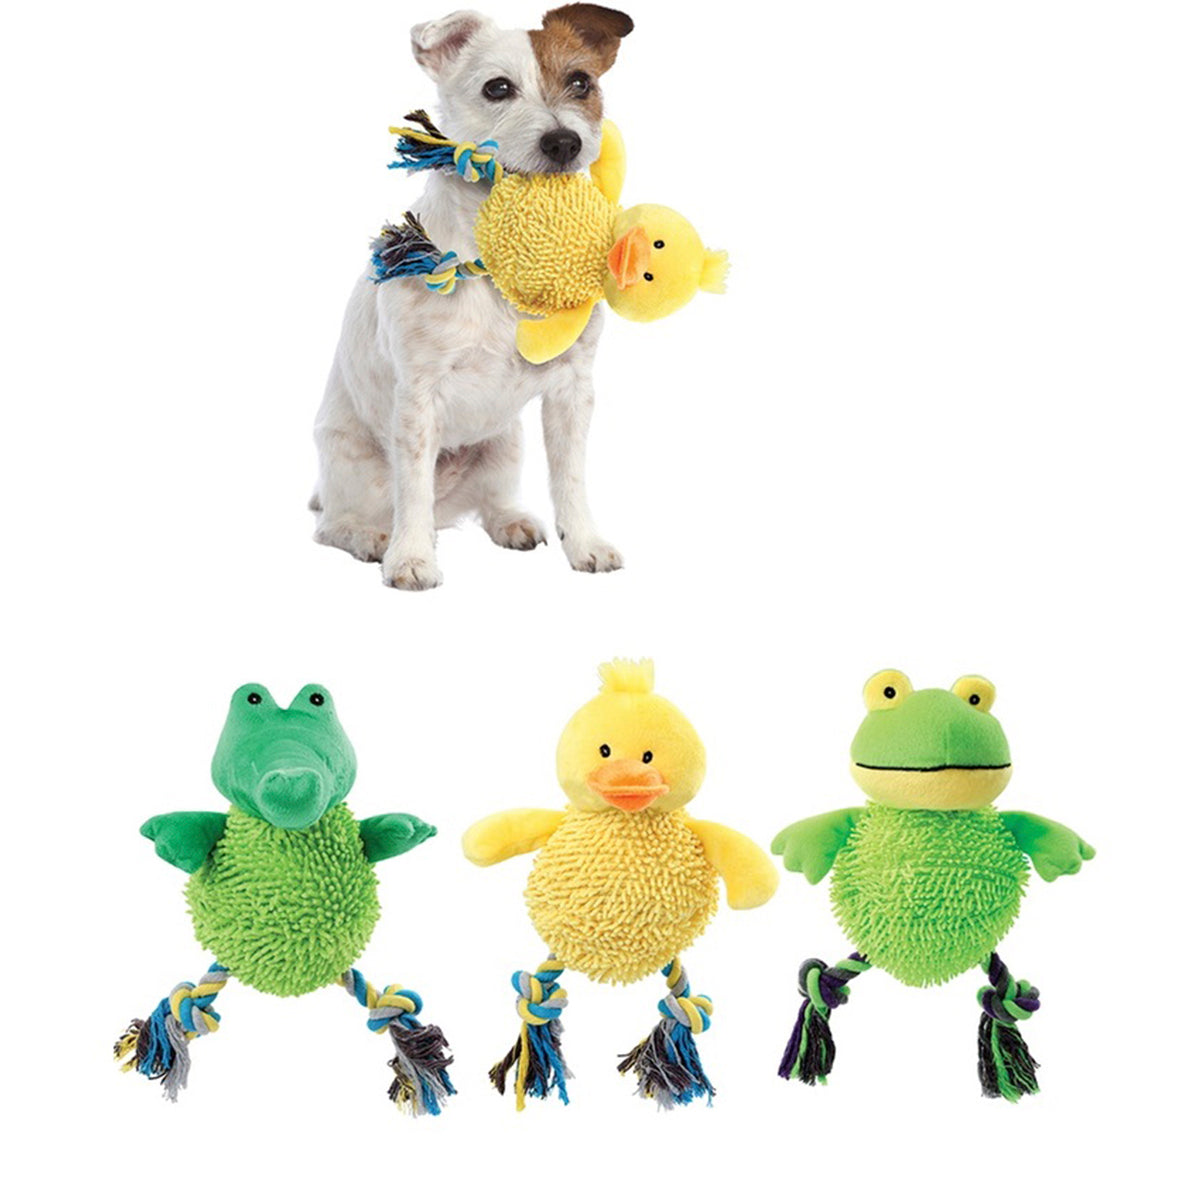 Soft Laughing Dog Toy Set - Frog Duck and Alligator Dog Toys